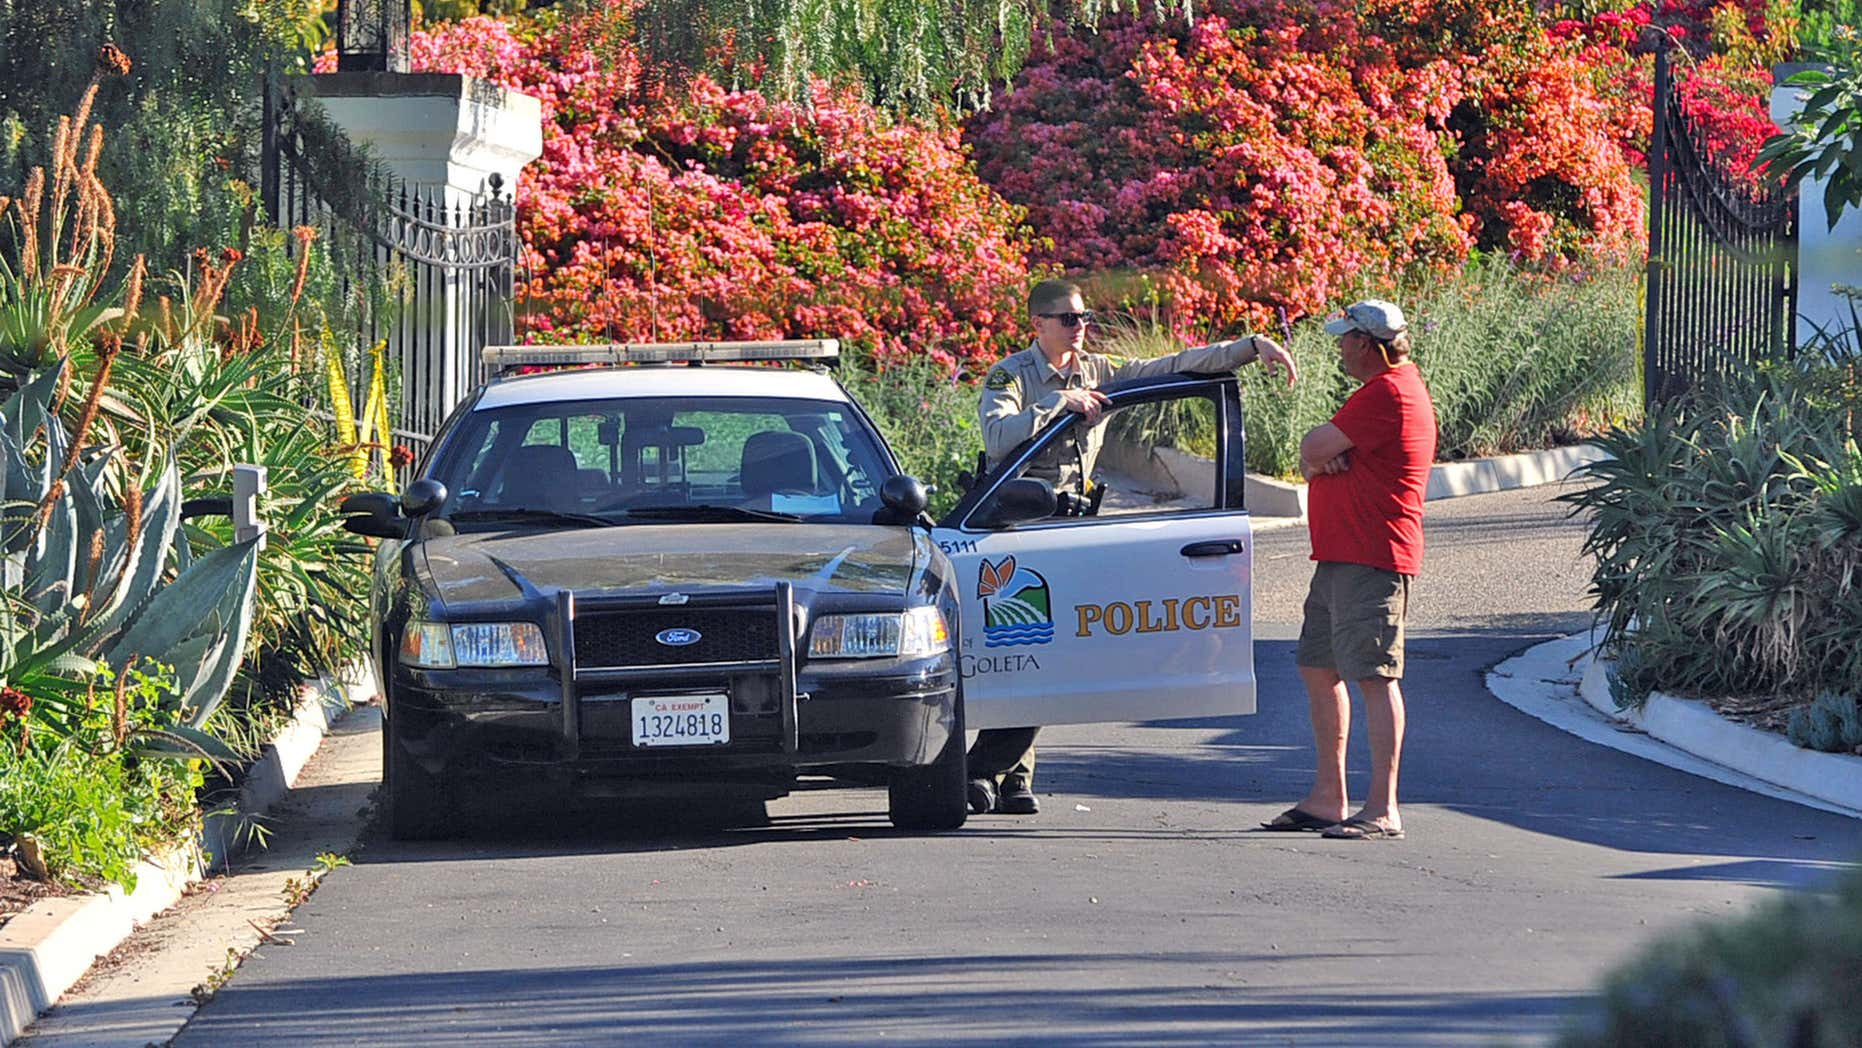 March 24, 2016: A Goleta Police officer stands guard near a home on Greenhill Way in unincorporated county territory between Santa Barbara and Goleta, Calif.